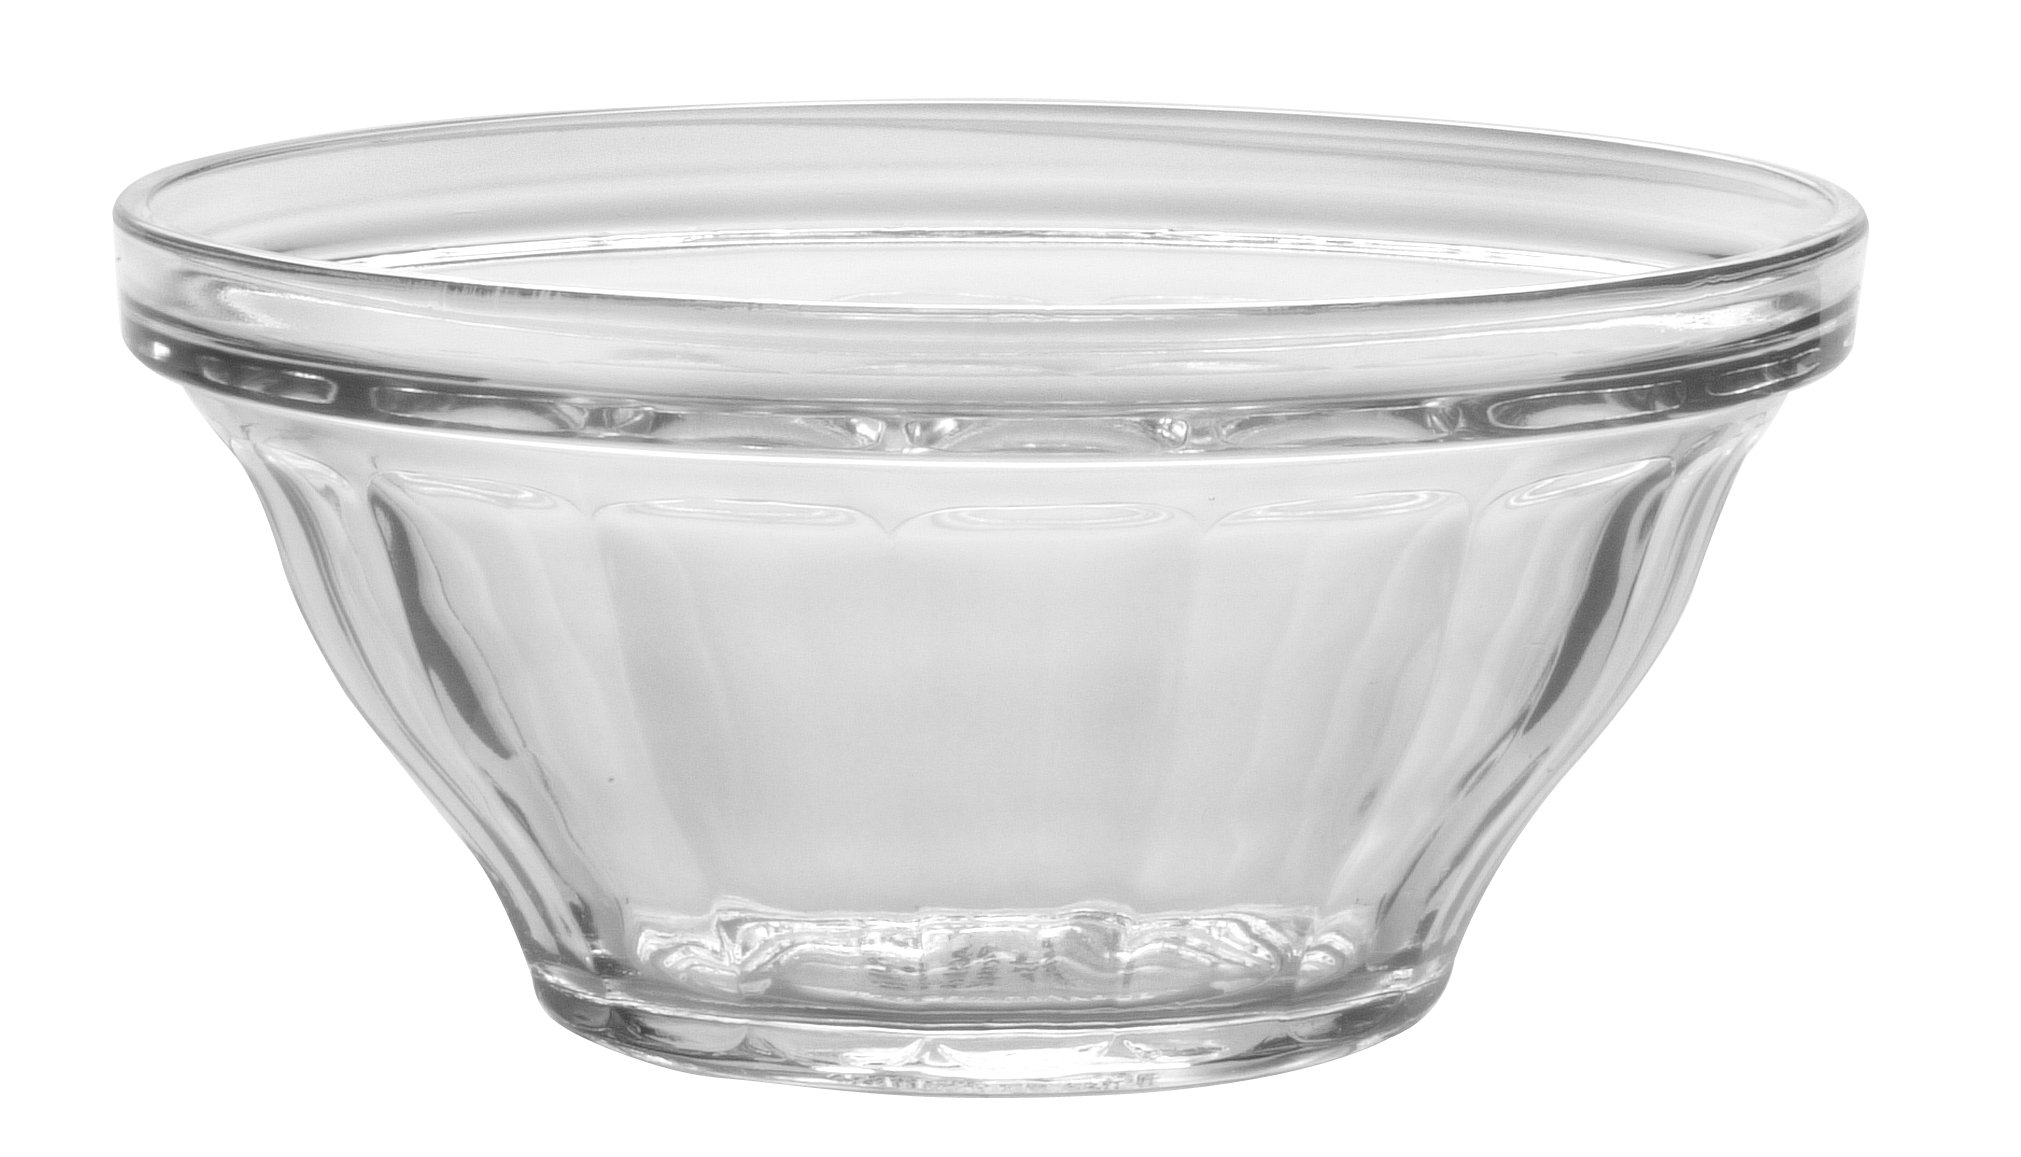 Duralex - Picardie Clear Bowl 15 cm - 5 7-8 in Set Of 6